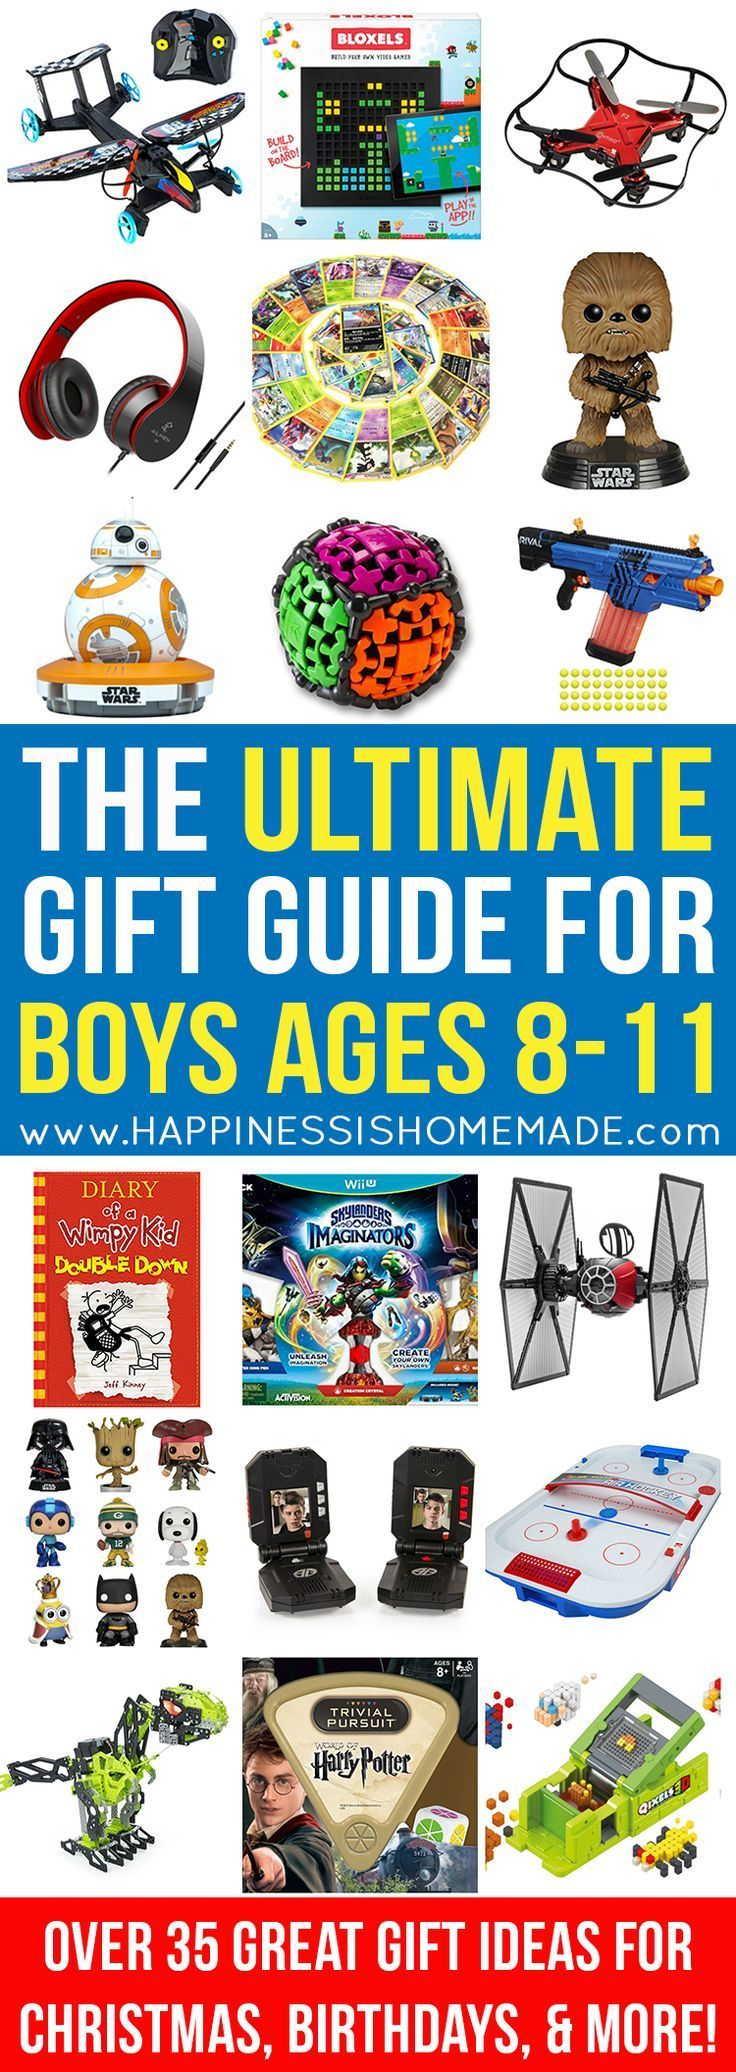 Cool Toys For Boys Age 8 : Images about best toys for year old girls on